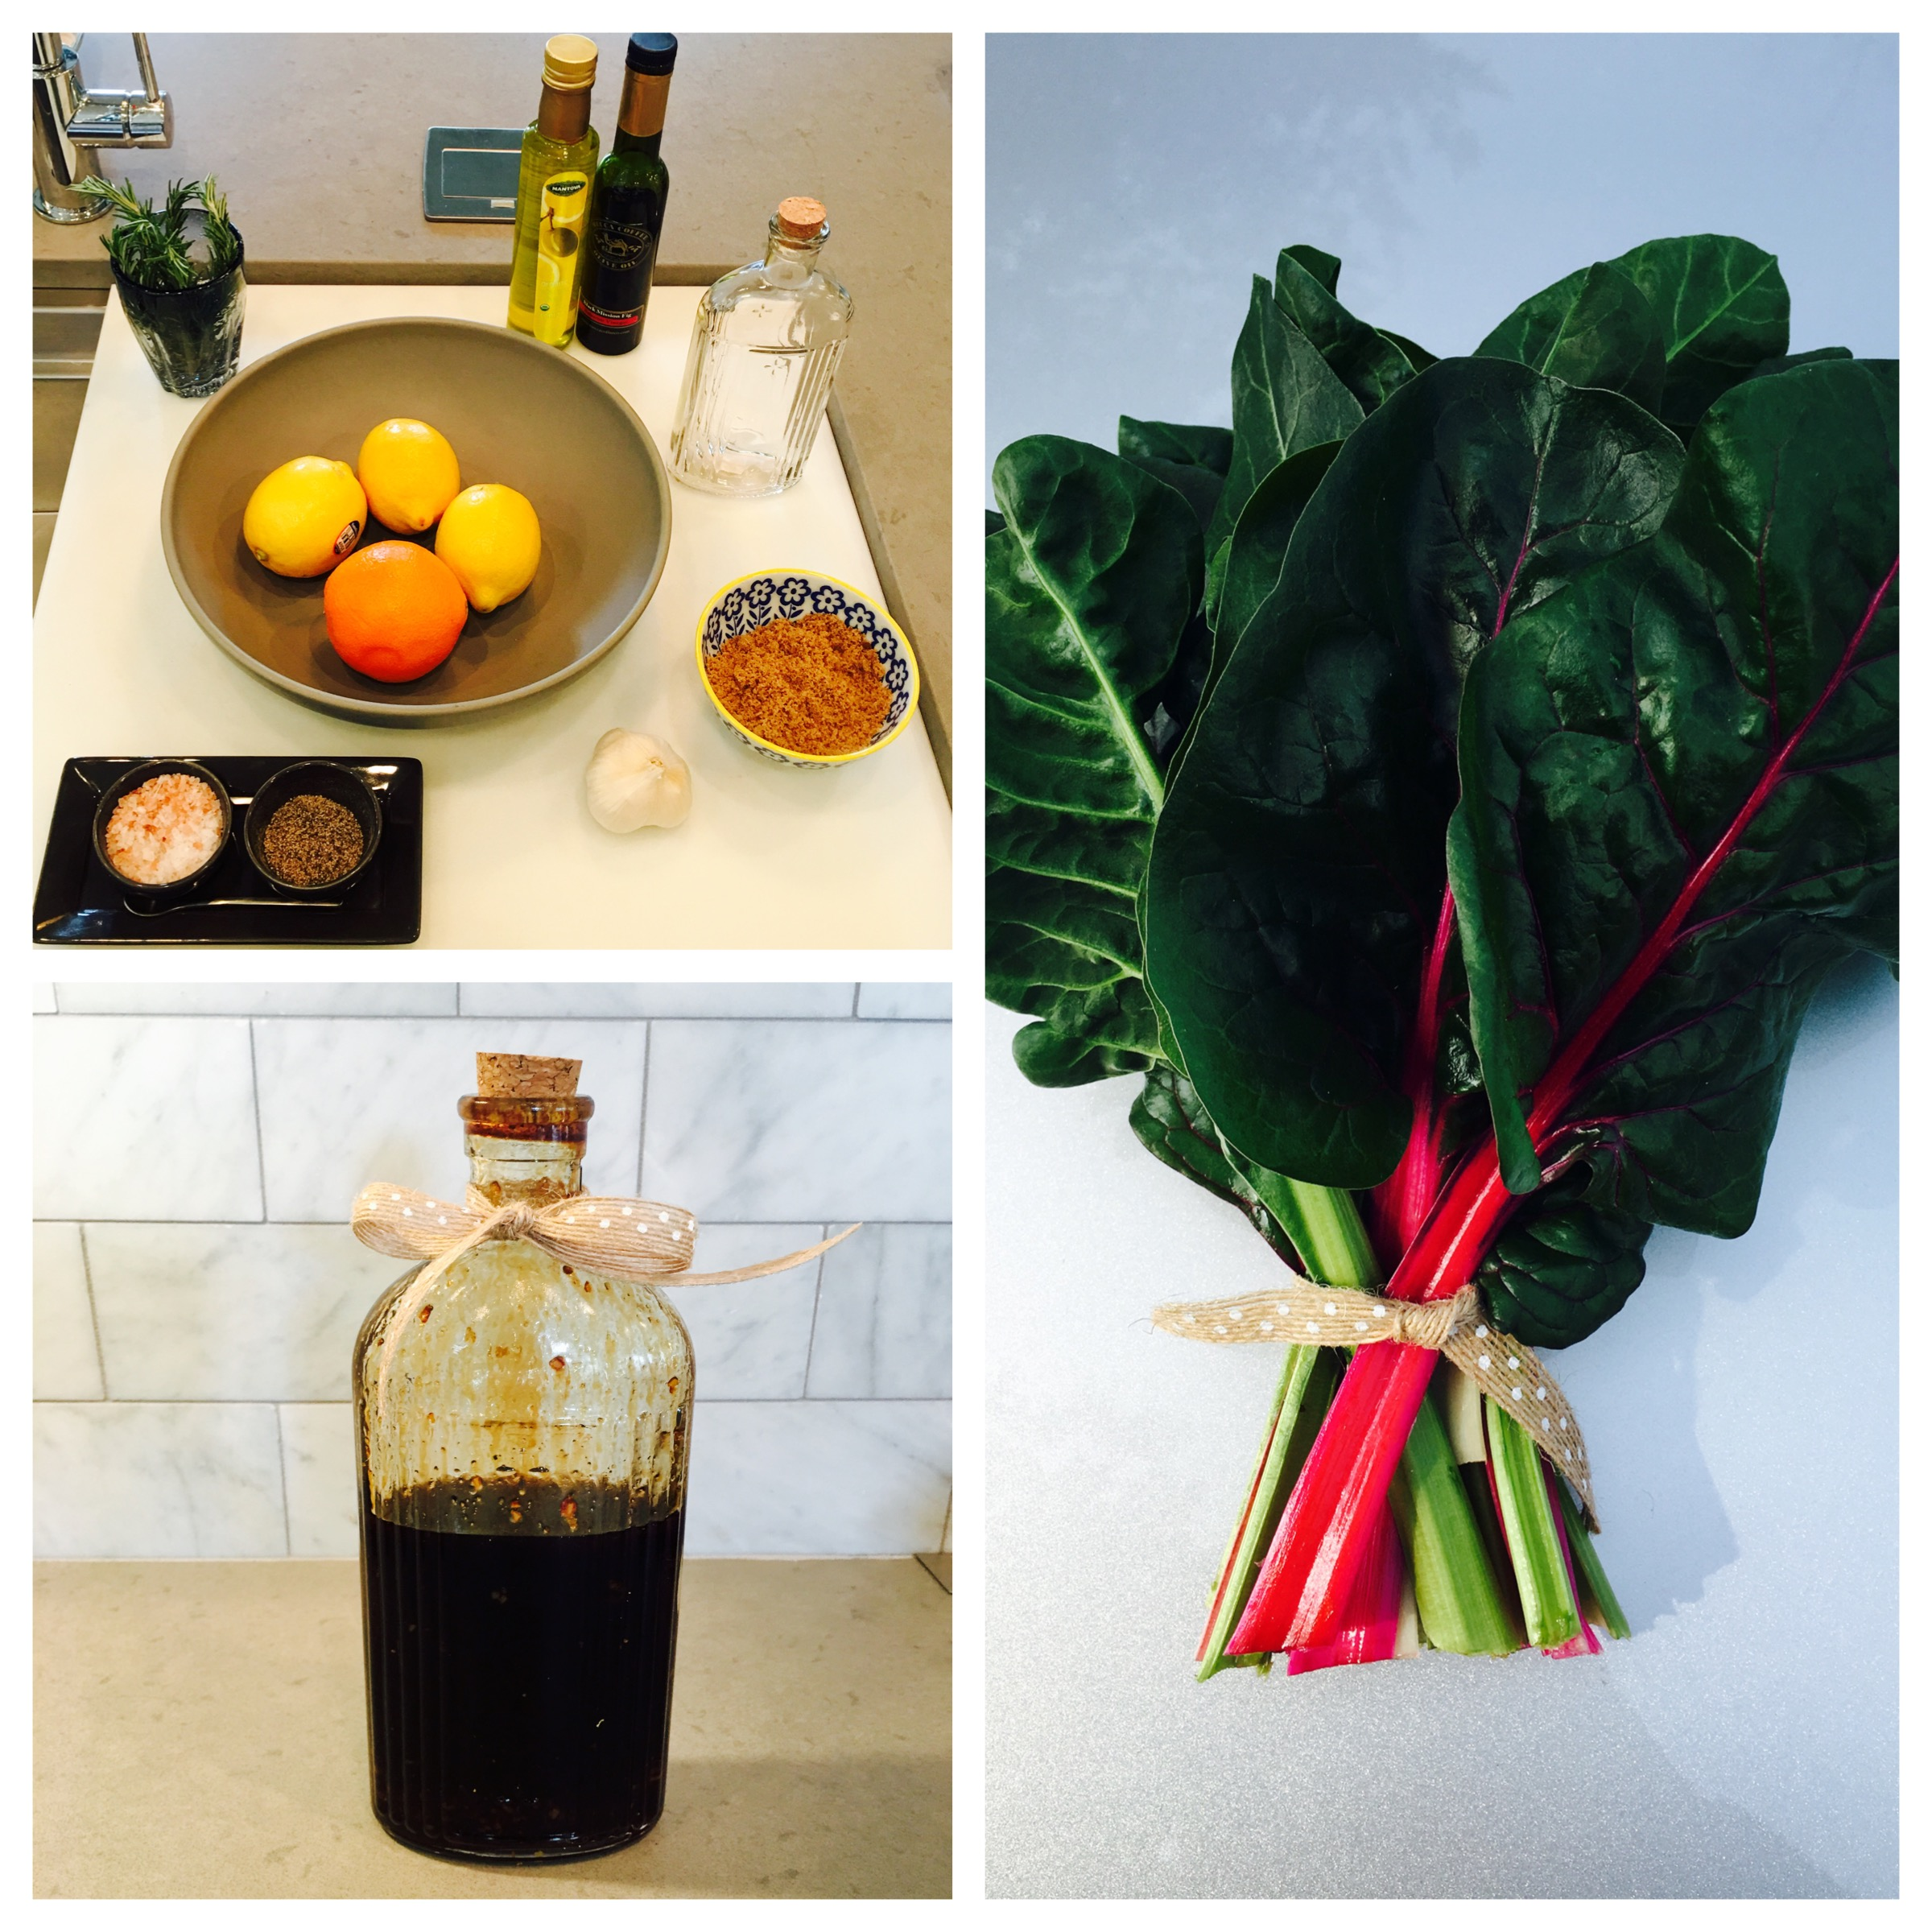 Recipes - Citrus Balsamic Vinaigrette